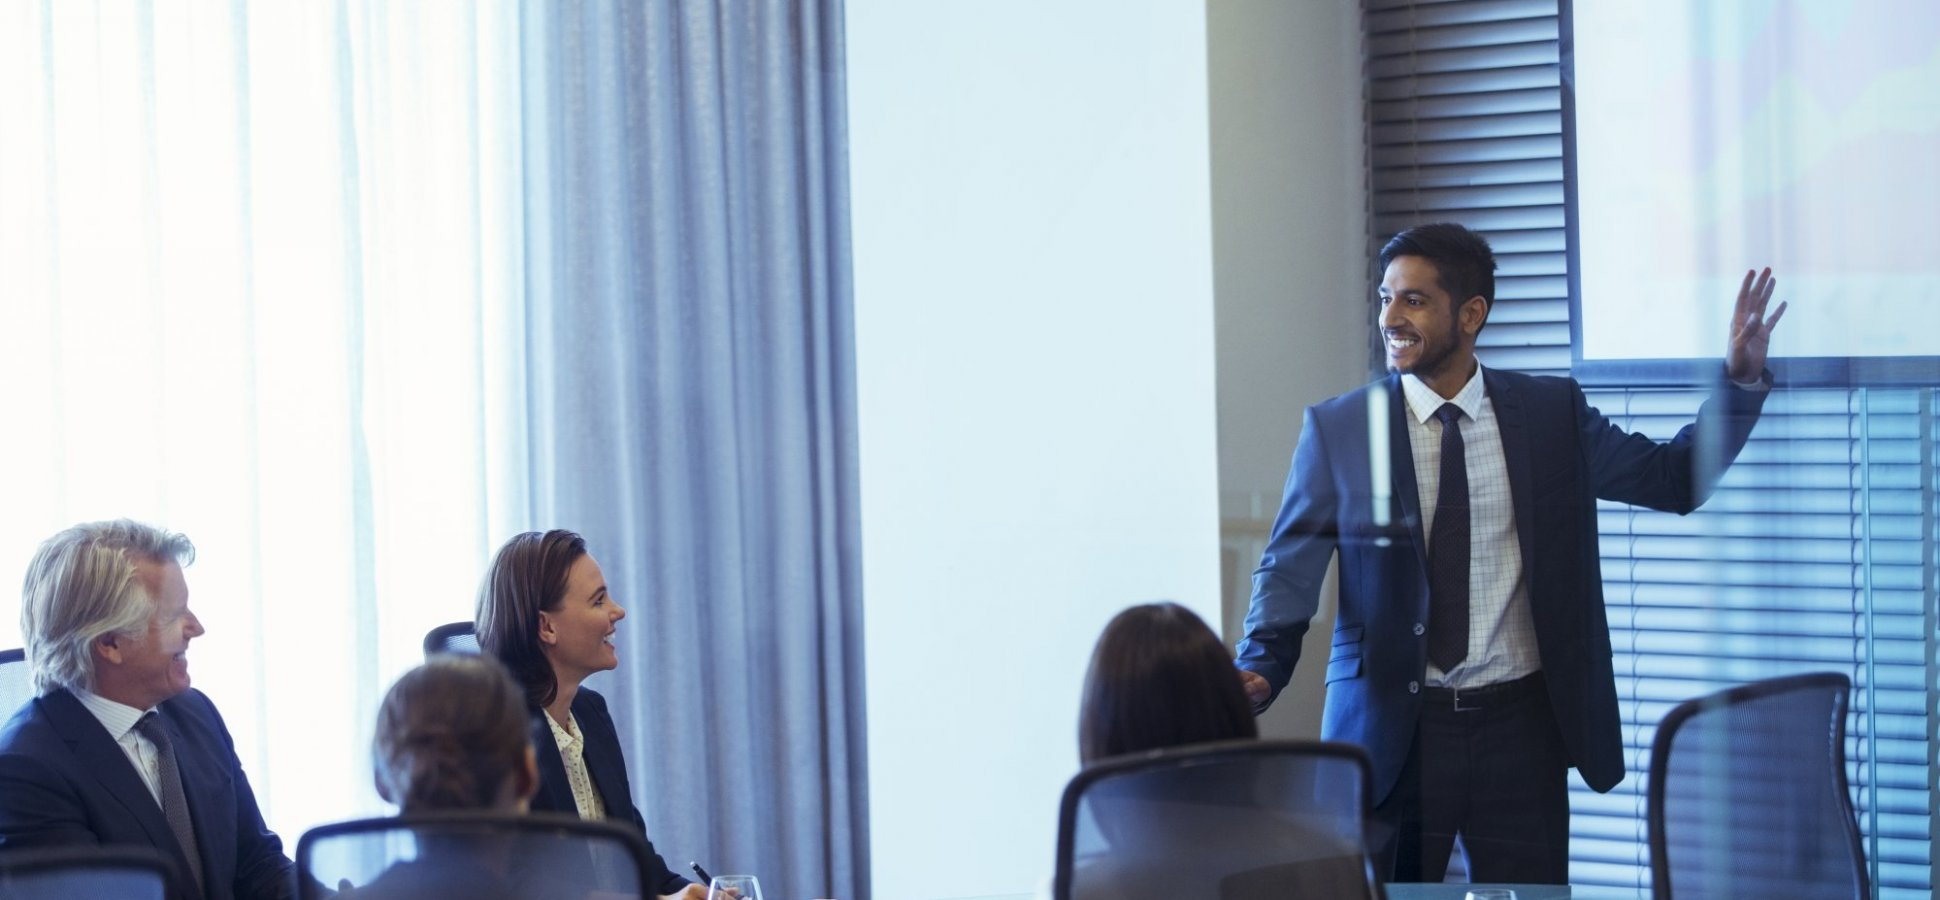 Public Speaking Is the 1 Skill that Will Make You Stand Out. Here Are 4 Simple Ways to Master It